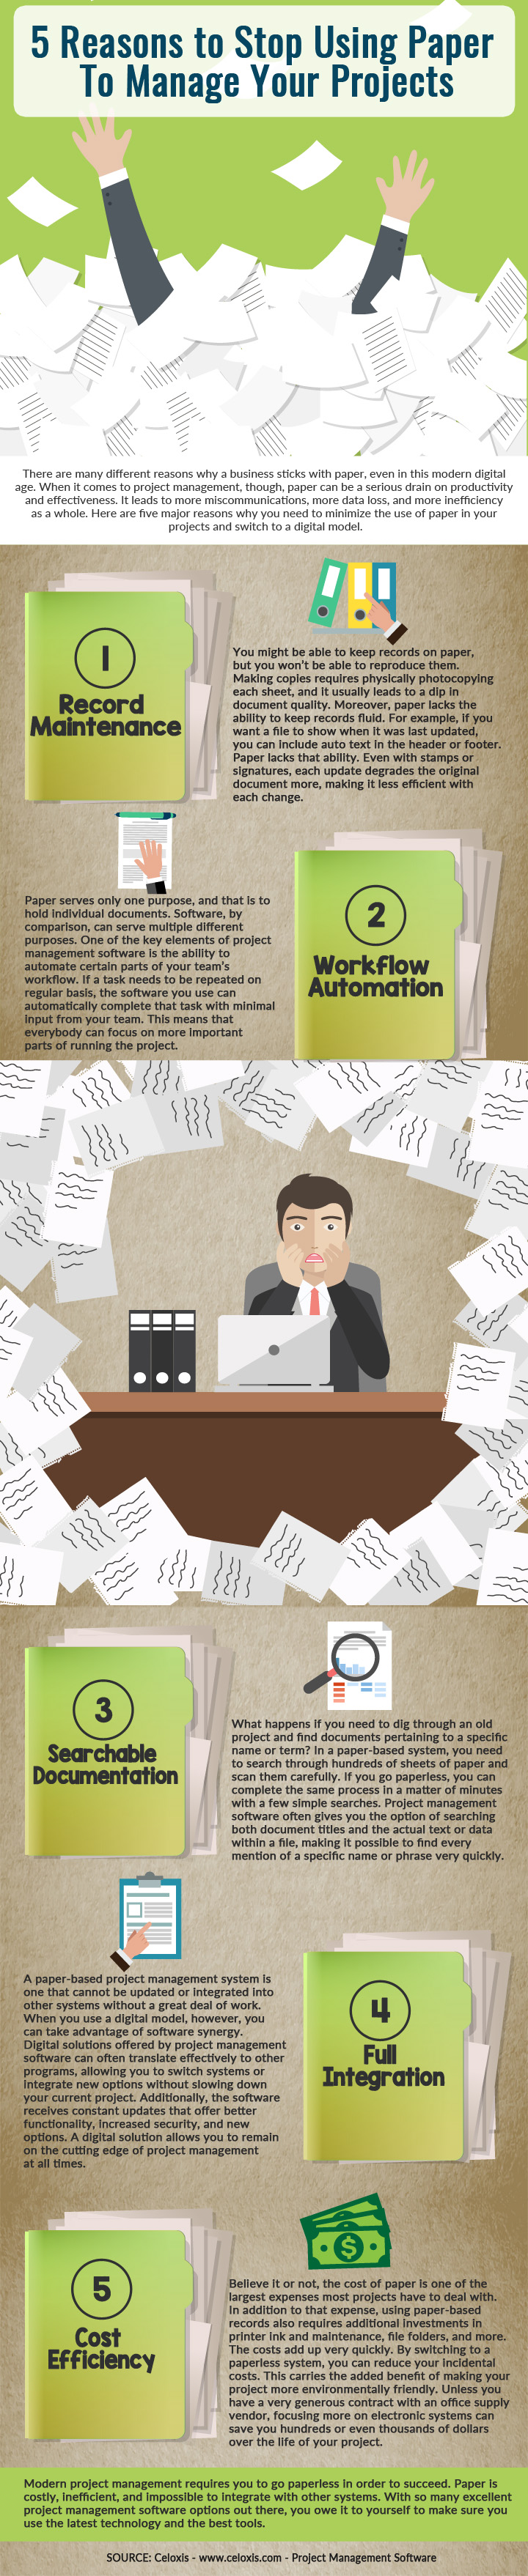 5_Reasons_to_stop_using_paper_to_manage_your_projects